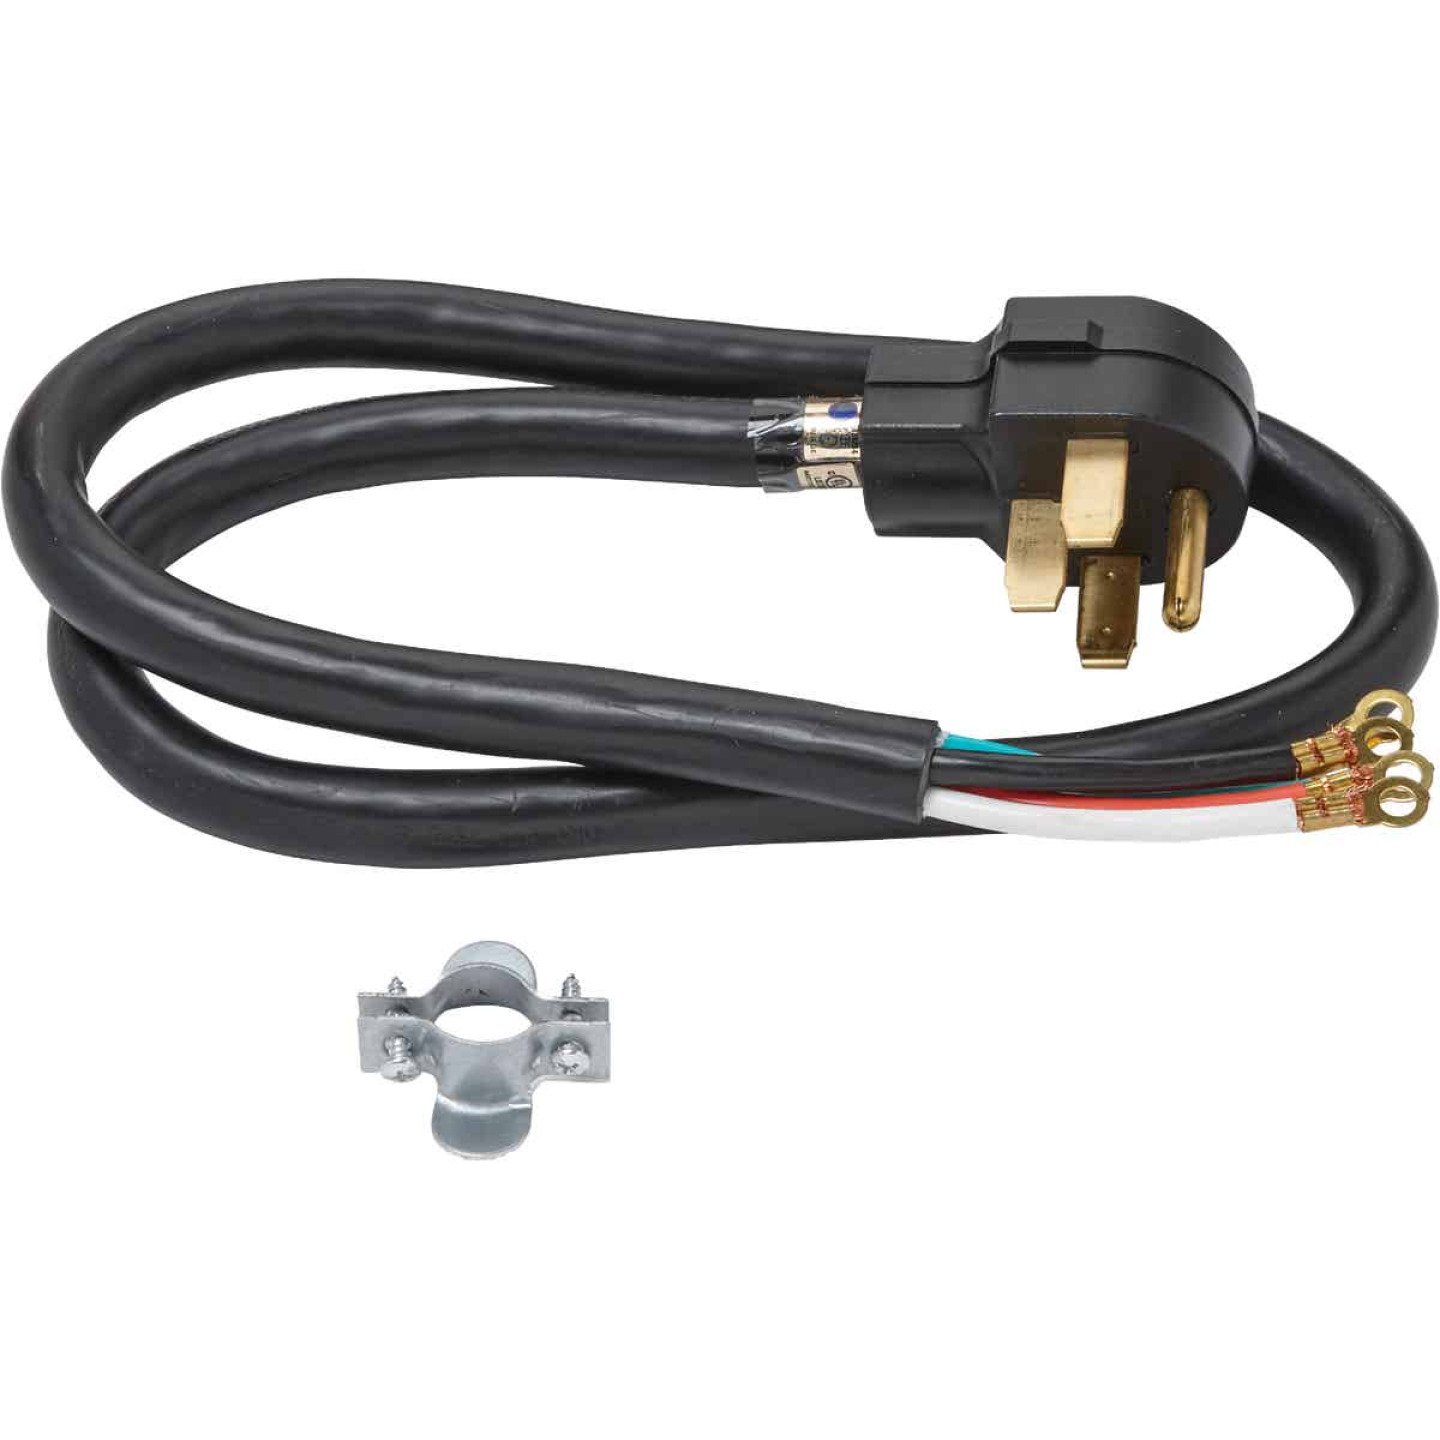 Do it Best 4 Ft. 6/2 + 8/2 Ga. 4-Conductor Range Cord Image 2